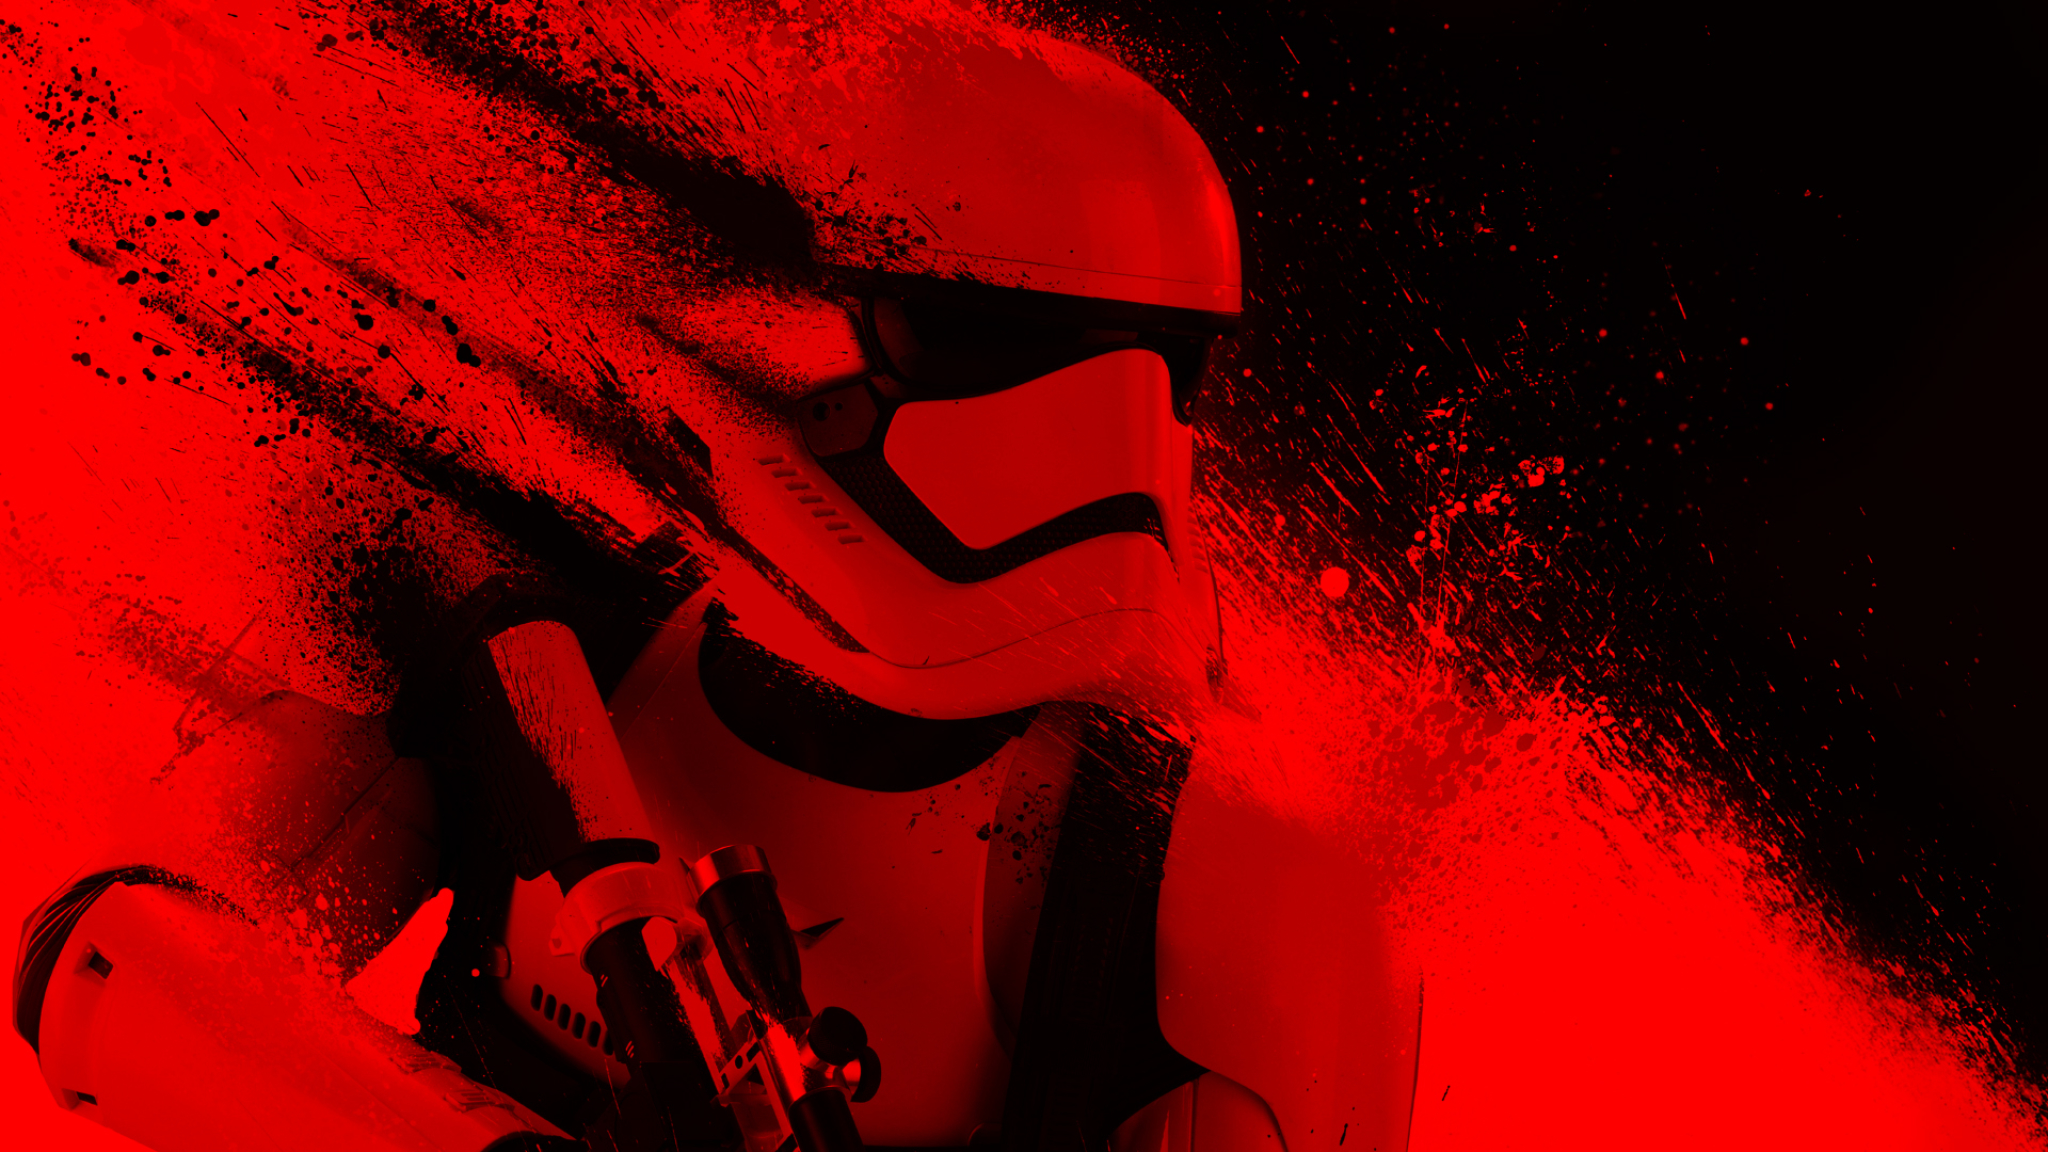 2048x1152 Stormtrooper Cool Star Wars 2048x1152 Resolution Wallpaper Hd Movies 4k Wallpapers Images Photos And Background Wallpapers Den